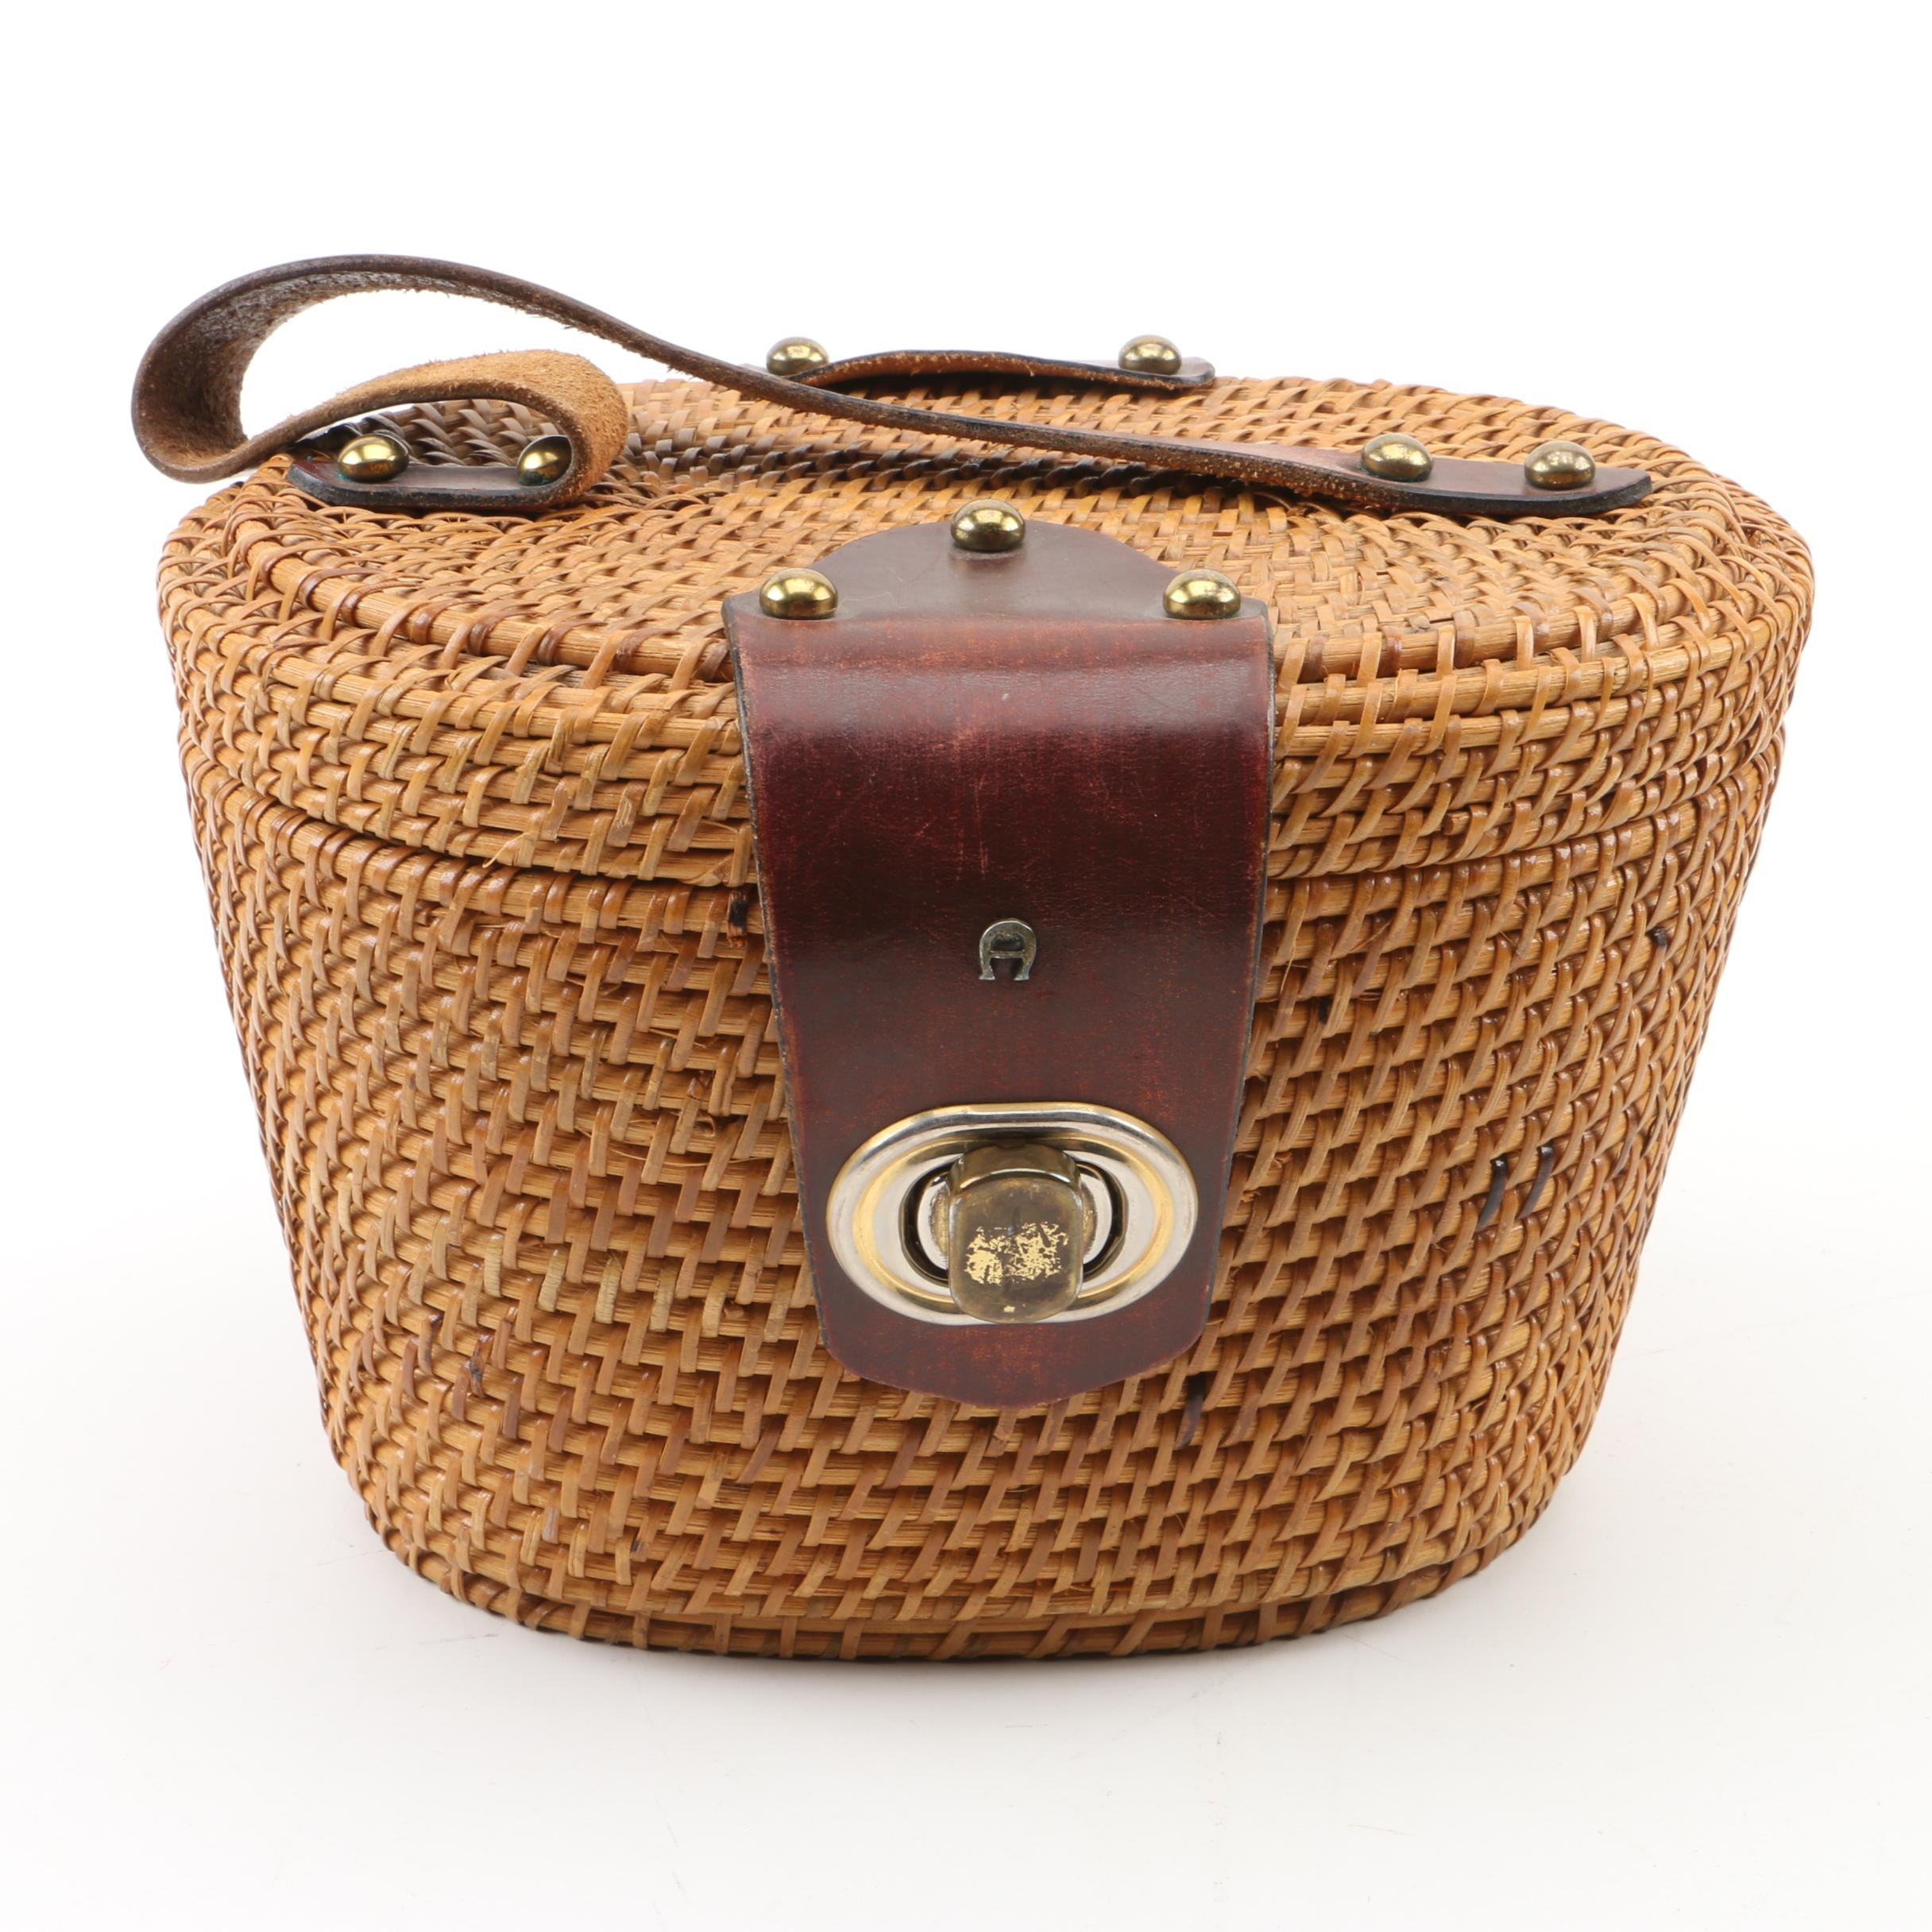 Circa 1960s Vintage Etienne Aigner Handmade Leather and Wicker Basket Purse